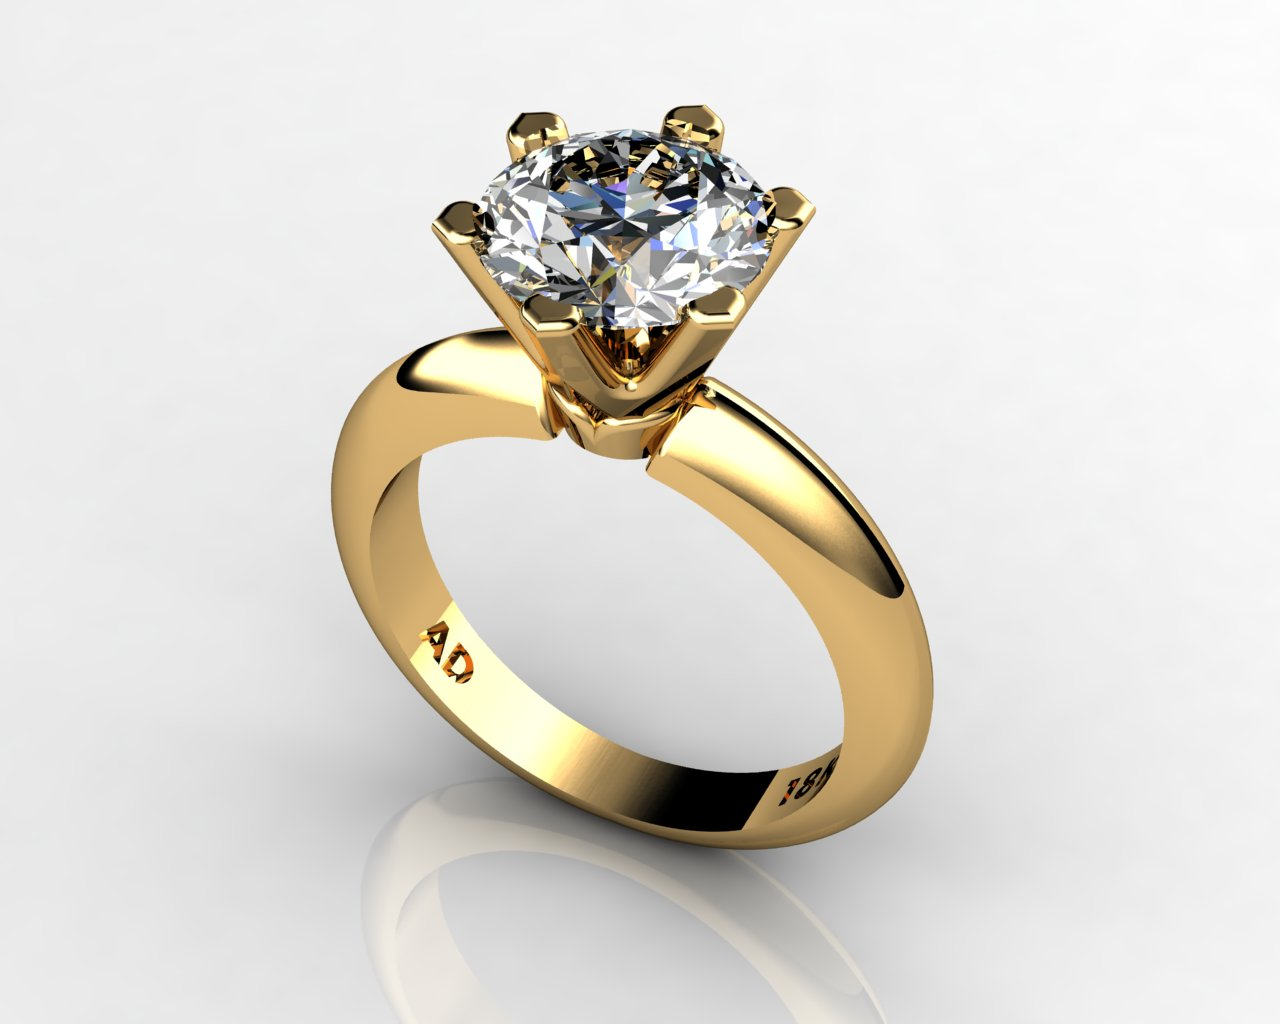 Kt Gold Engagement Ring